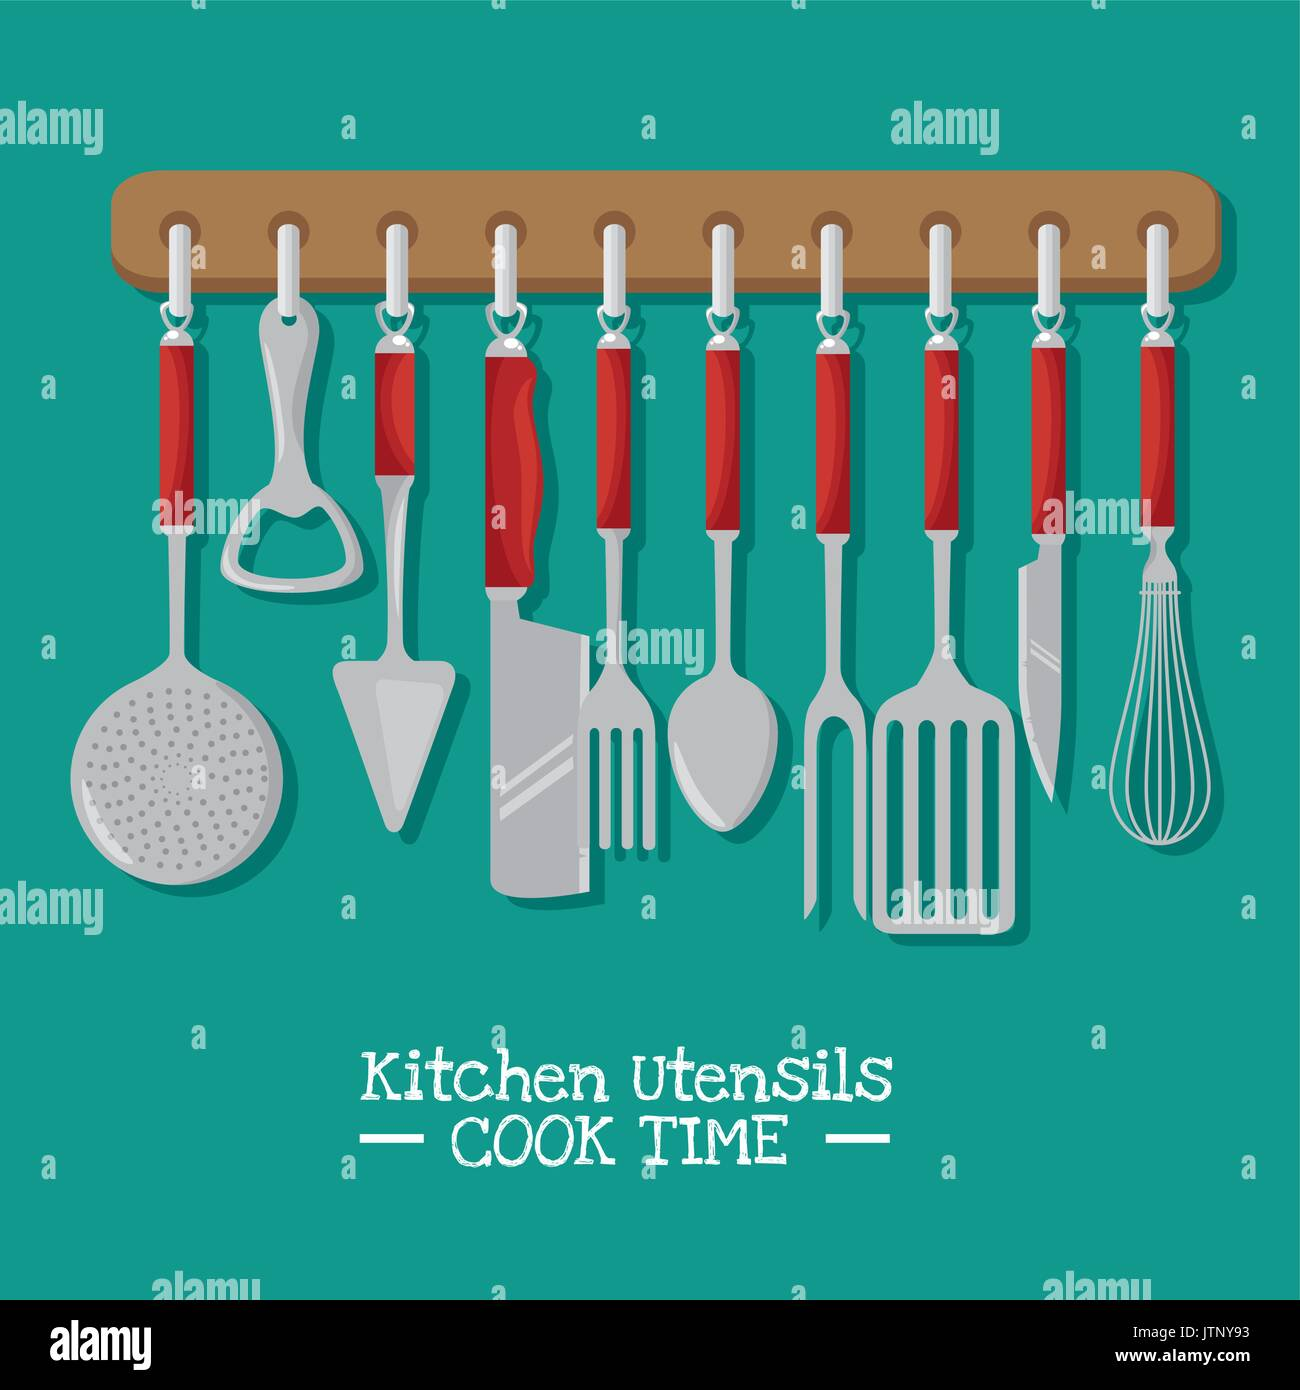 Old Cooker Stock Vector Images - Alamy